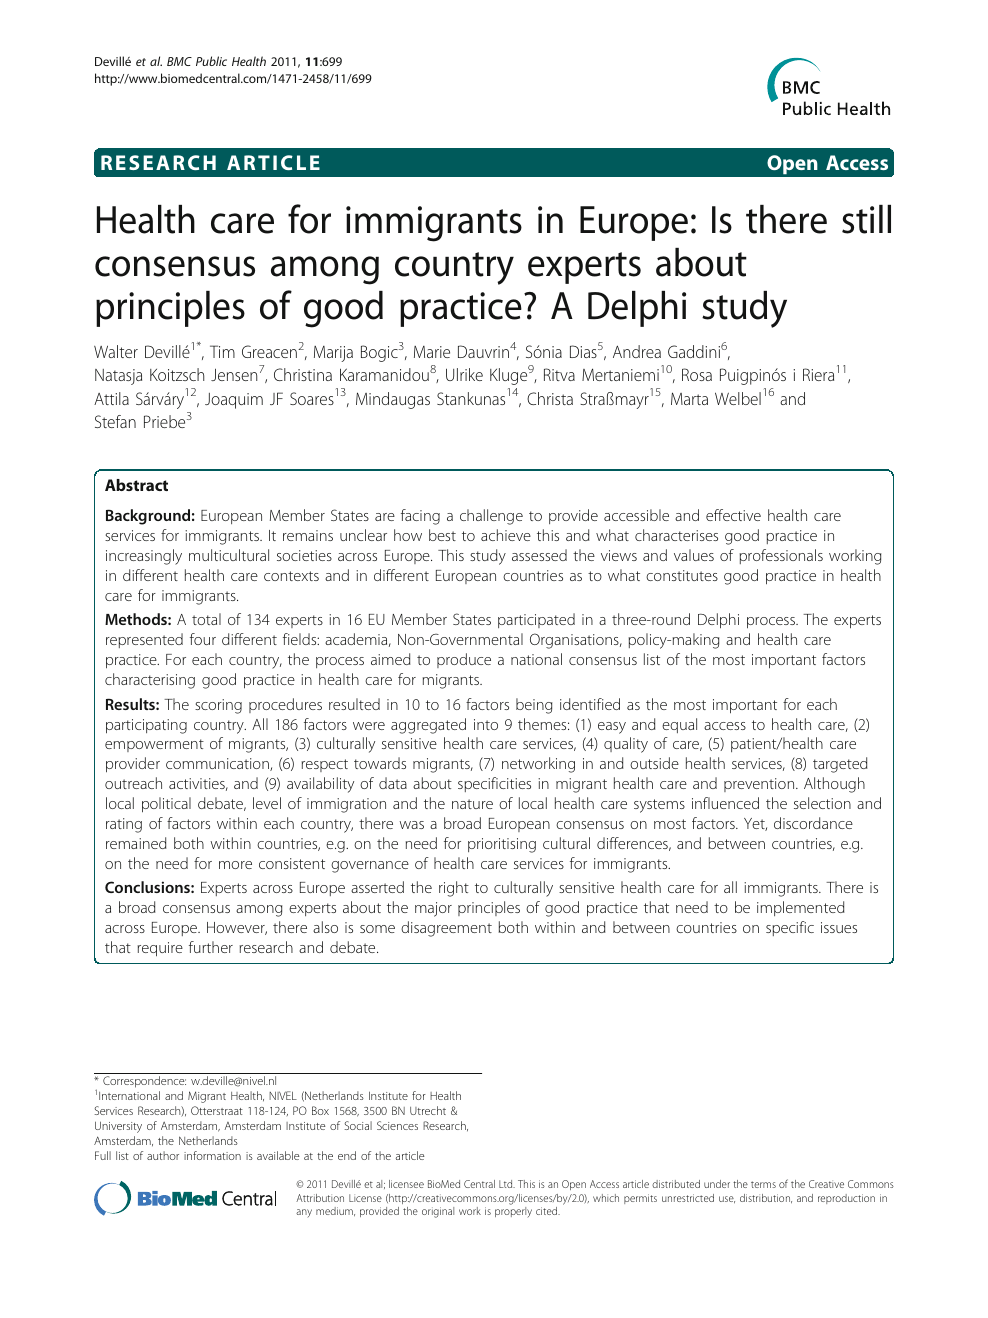 Health care for immigrants in Europe: Is there still consensus among